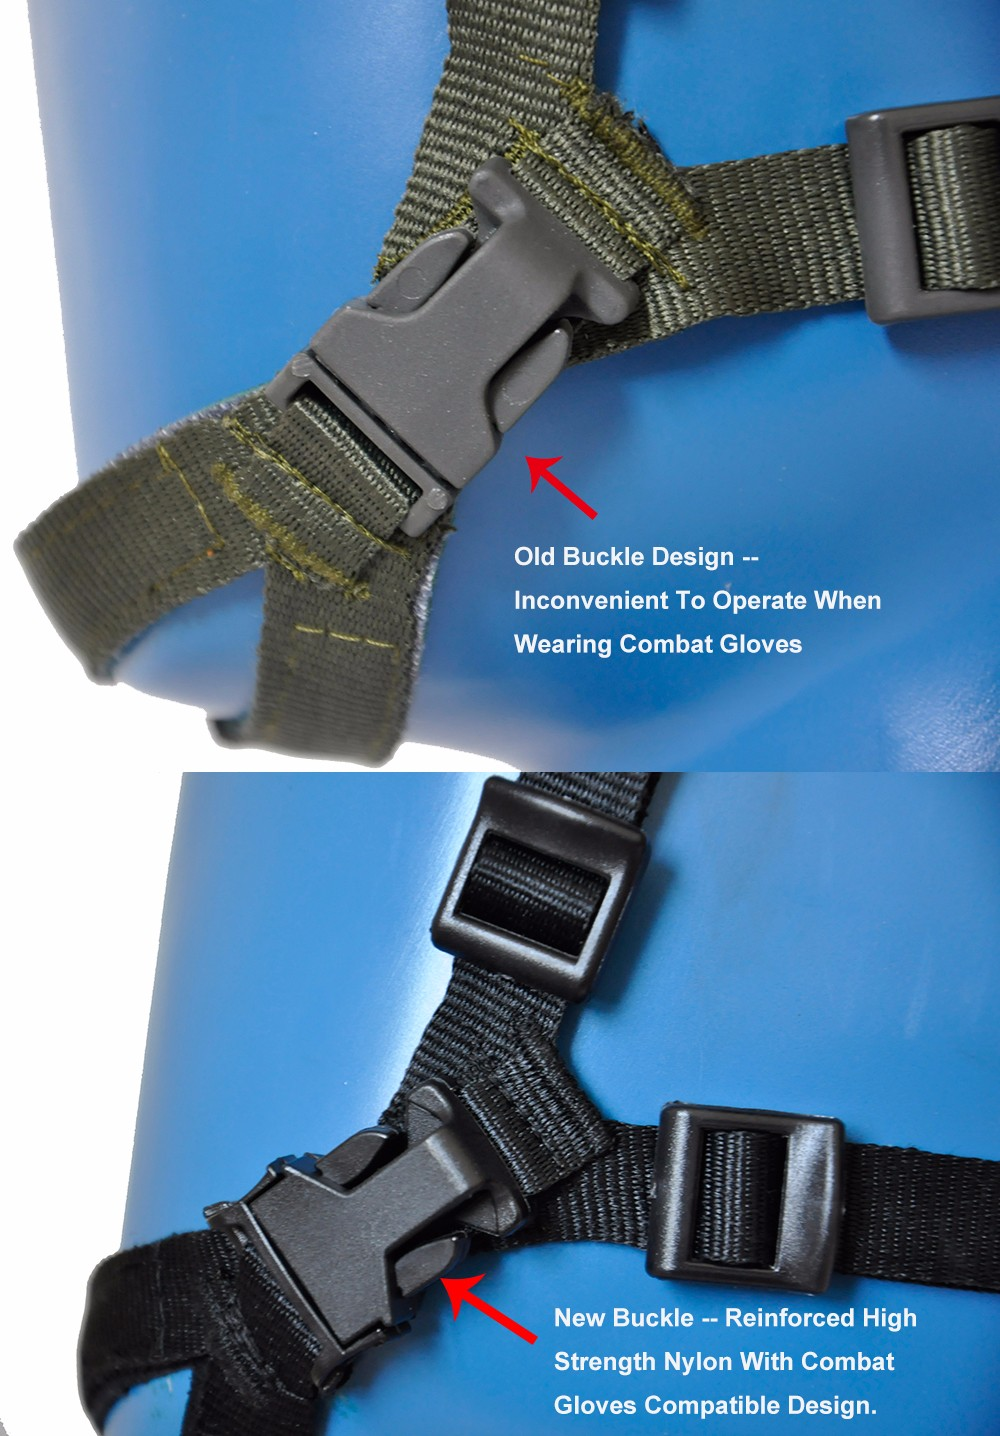 BK Buckle Comparison